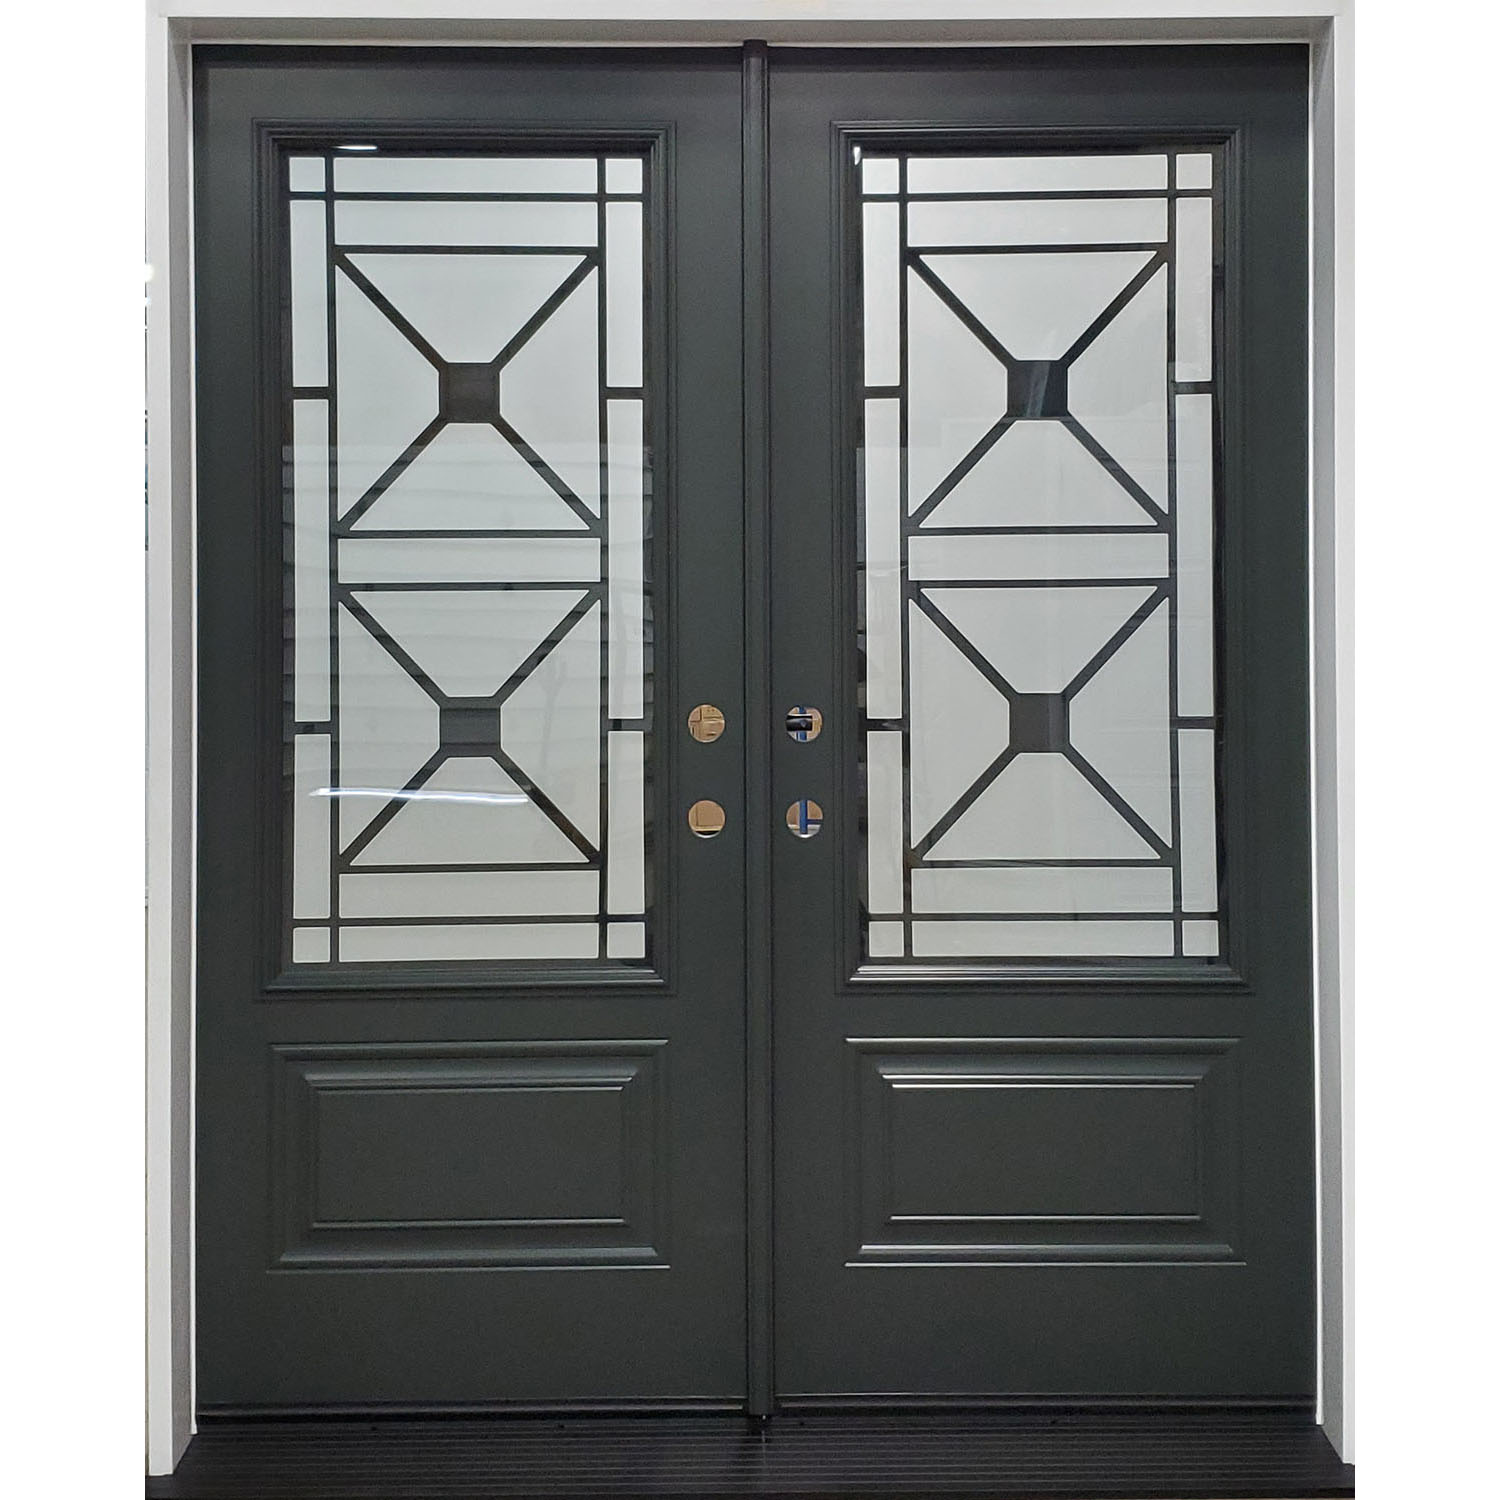 Double door with Wrought Iron Excalibur